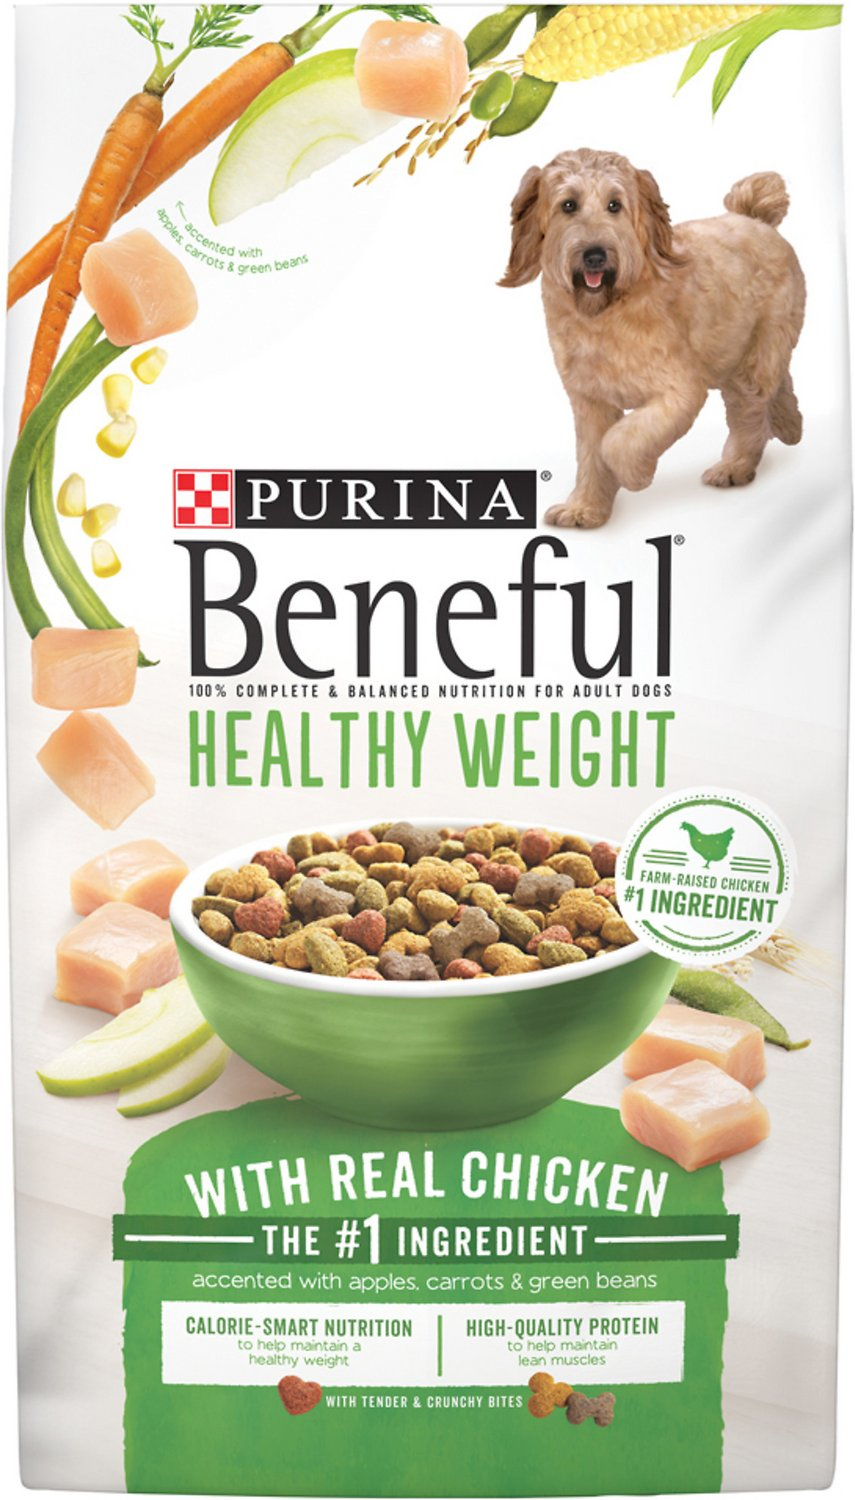 Purina Brand Beneful Grain Free Dog Food Reviews